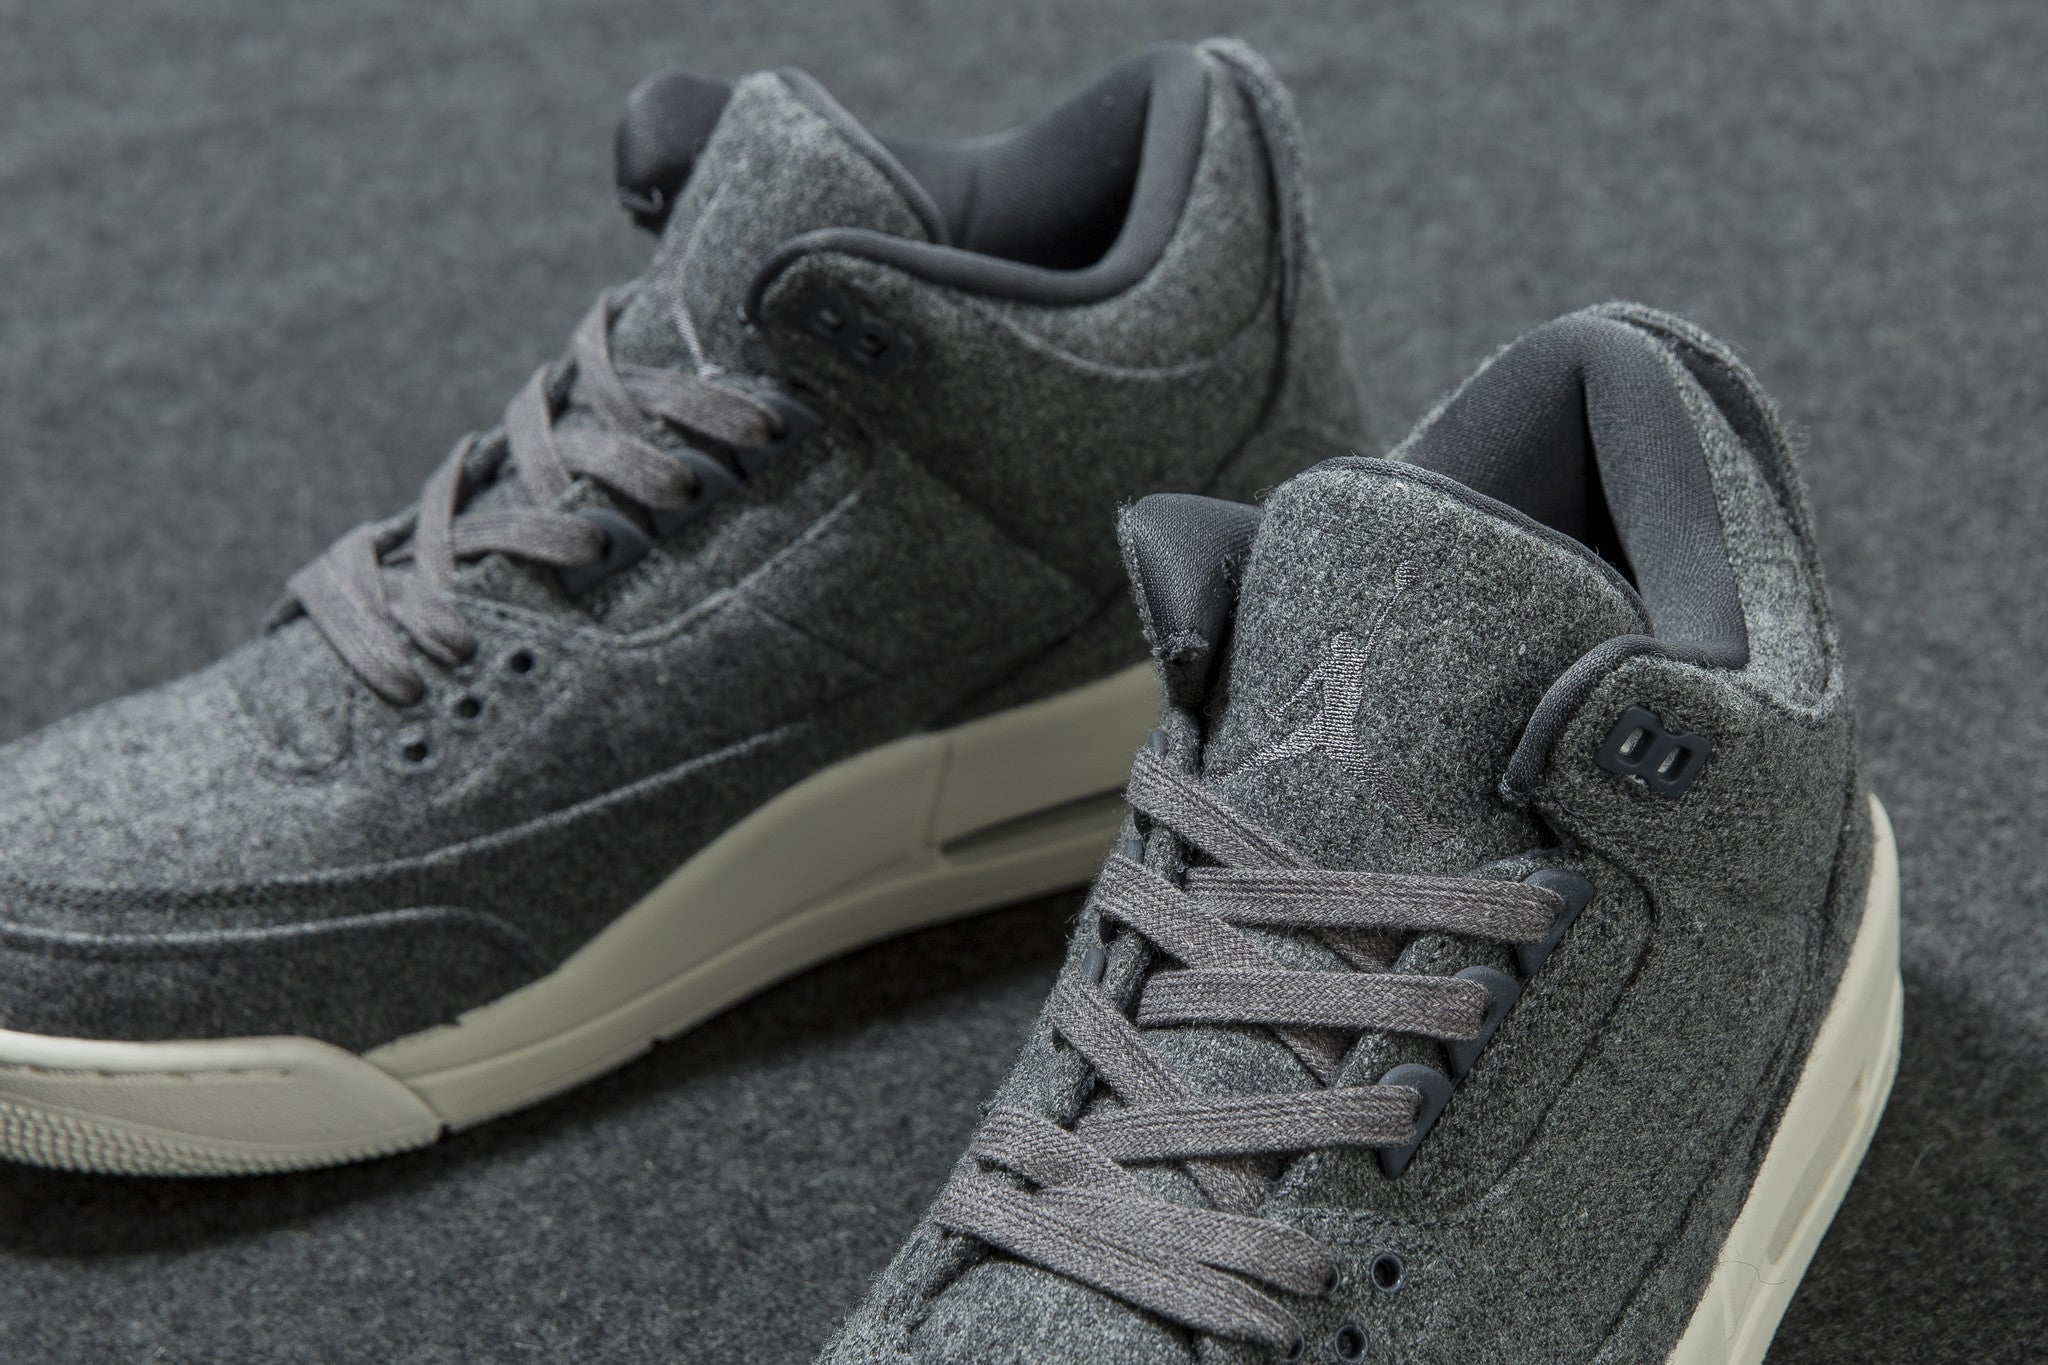 The Wool release of the Air Jordan 3 features a Dark Grey and Sail color  combination. Just like the Air Jordan 12  Wool  6a90118df